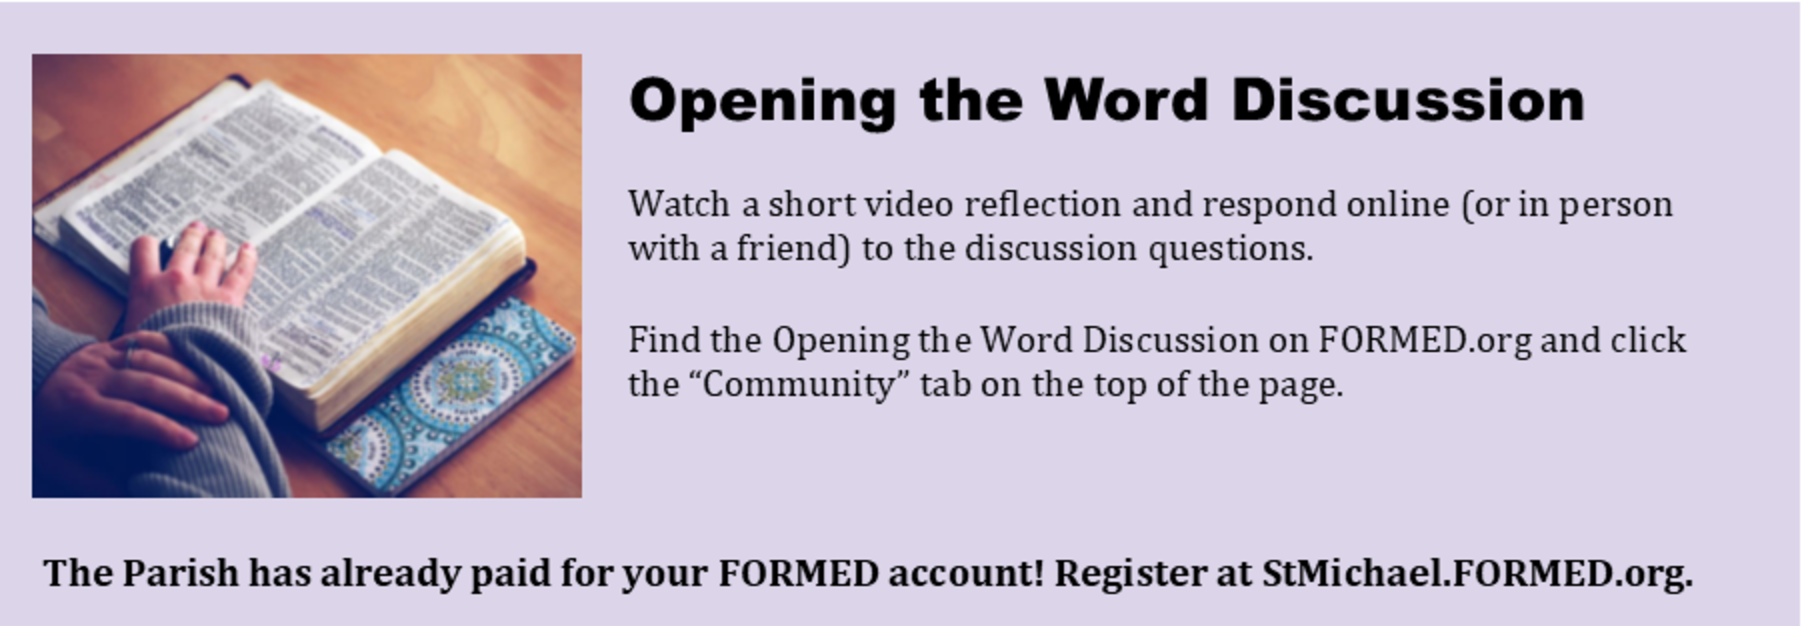 Opening the Word Discussion